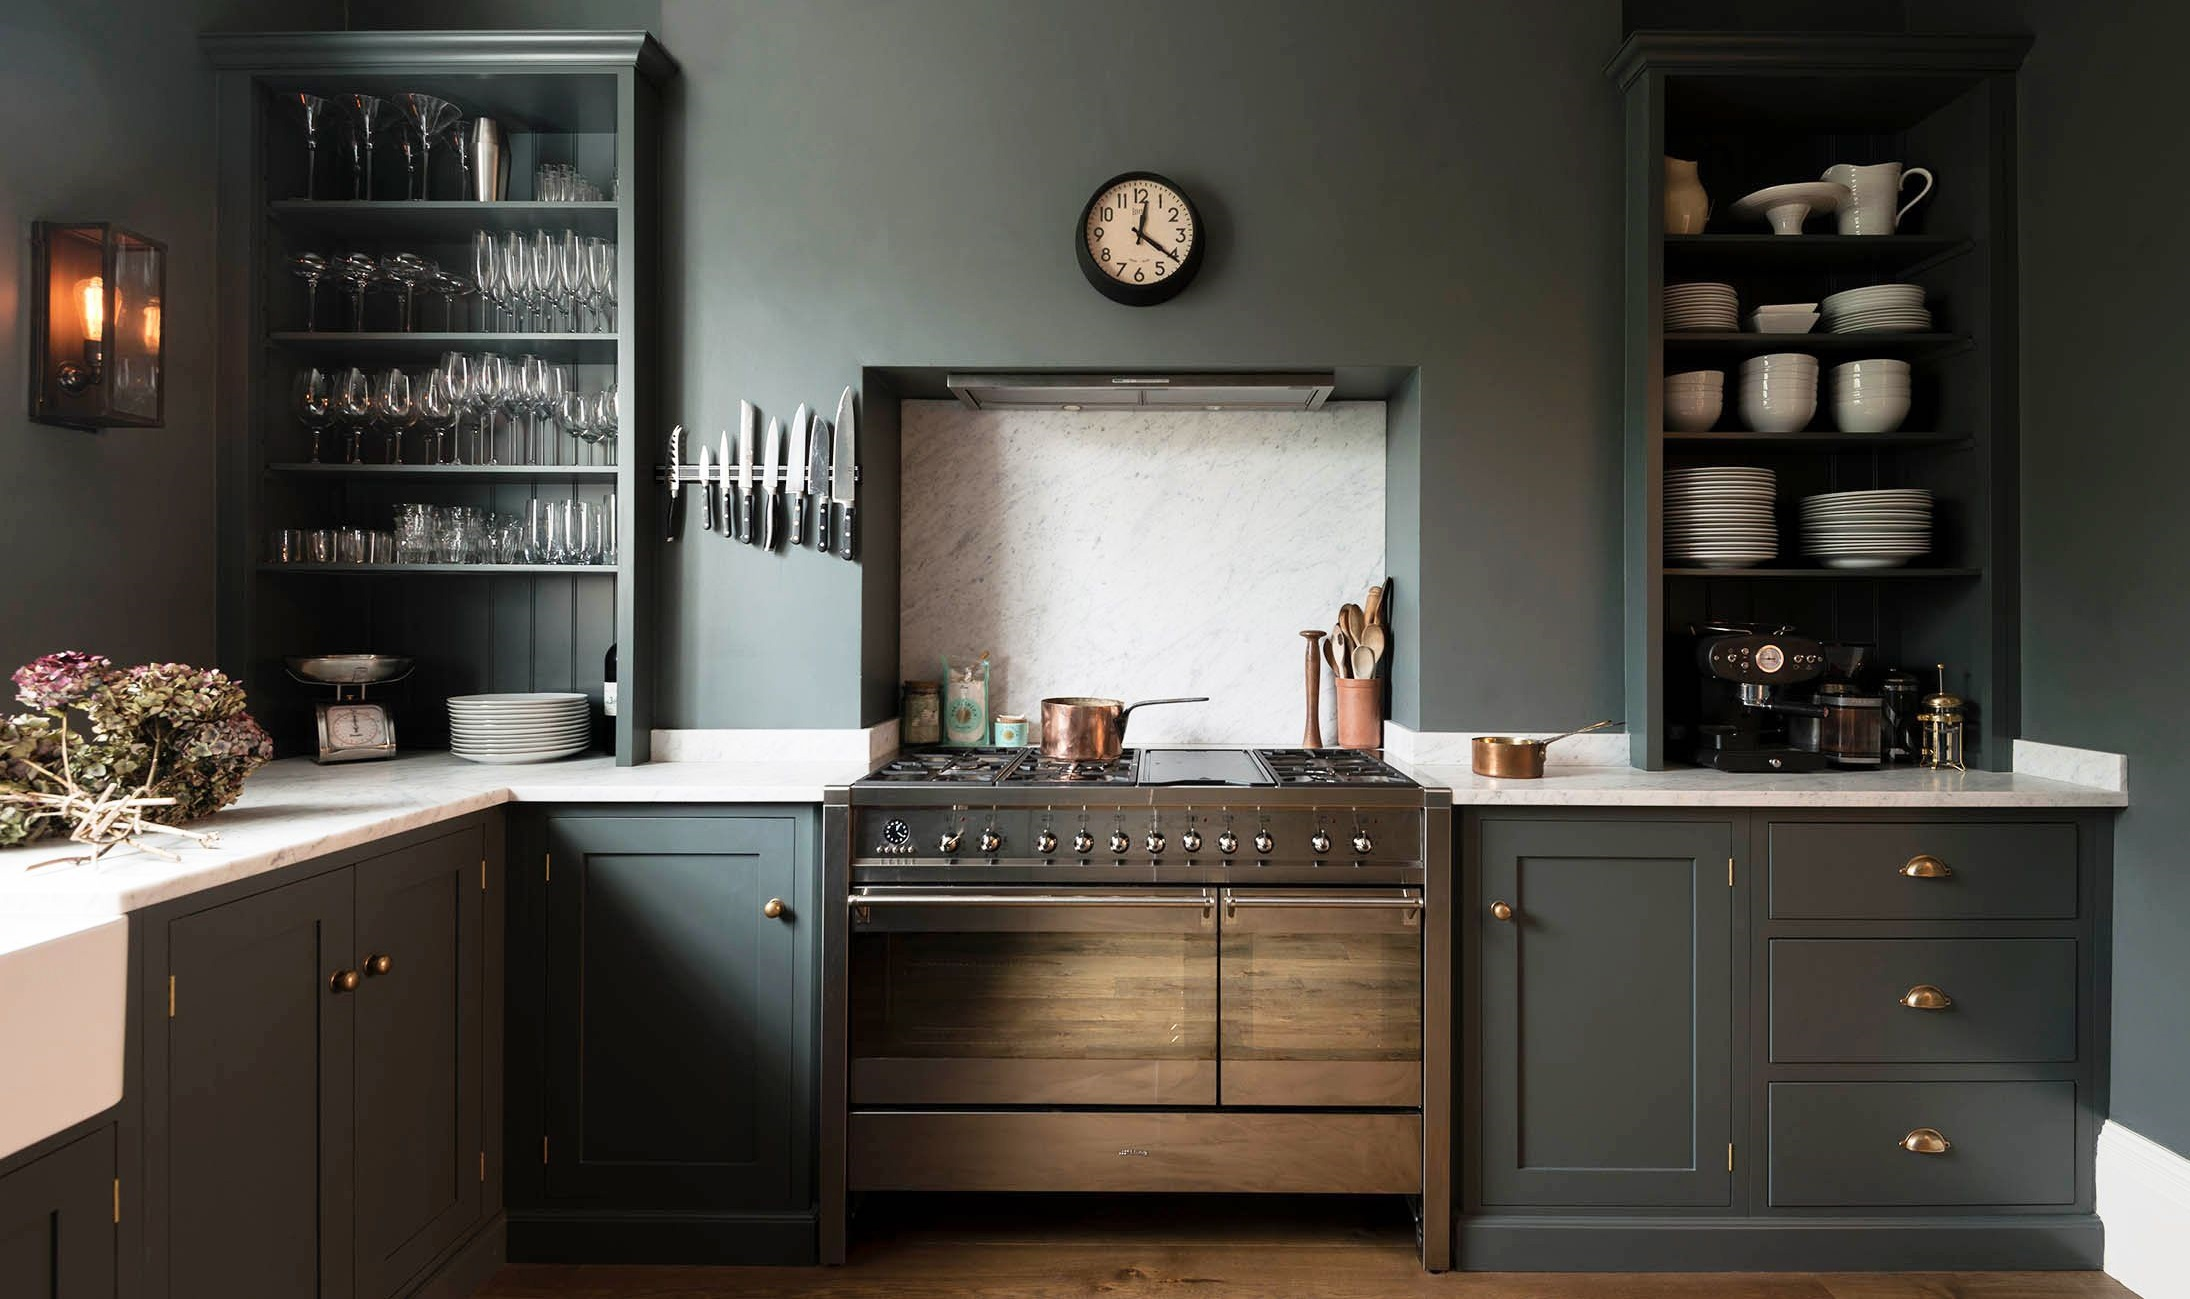 dark-paints-3 80+ Unusual Kitchen Design Ideas for Small Spaces in 2021